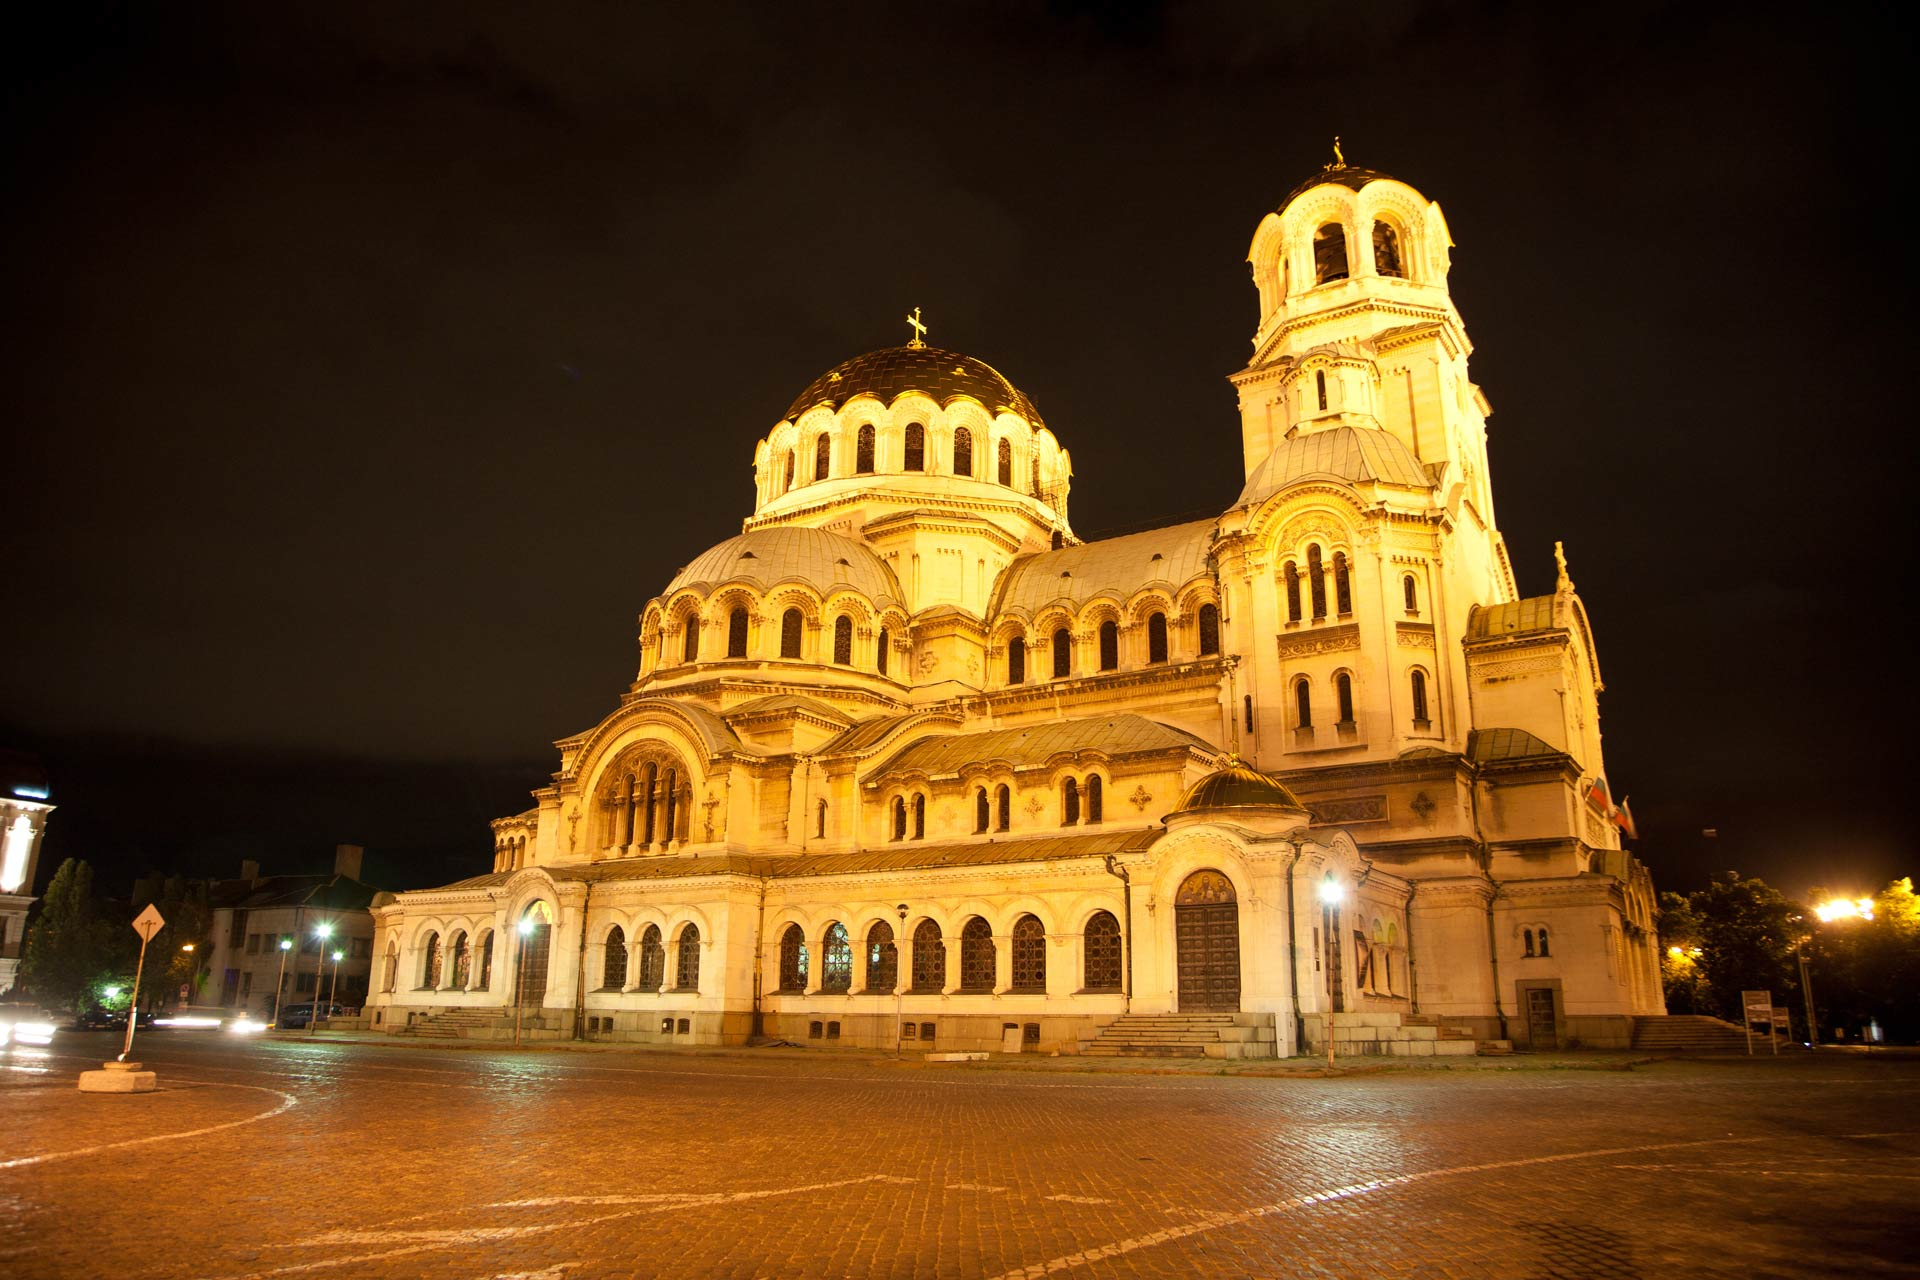 Alexander Nevsky Cathedral at night, Sofia, Bulgaria